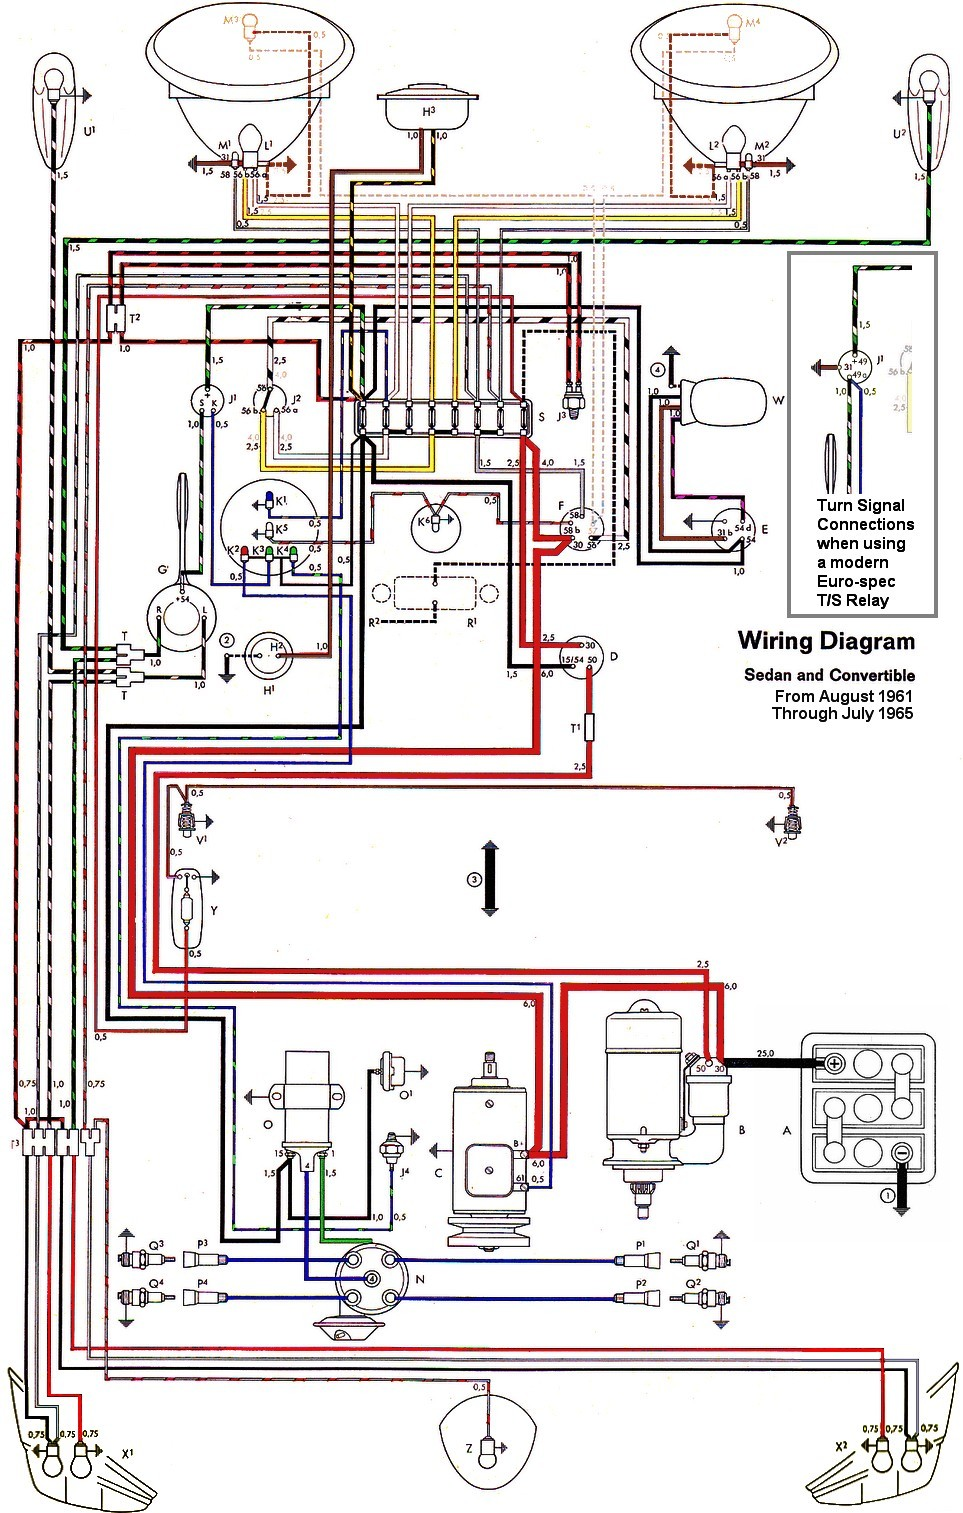 hight resolution of 62 vw bug wiring harness diagram wiring diagram third level 1969 vw beetle wiring diagram 1962 beetle wiring diagram